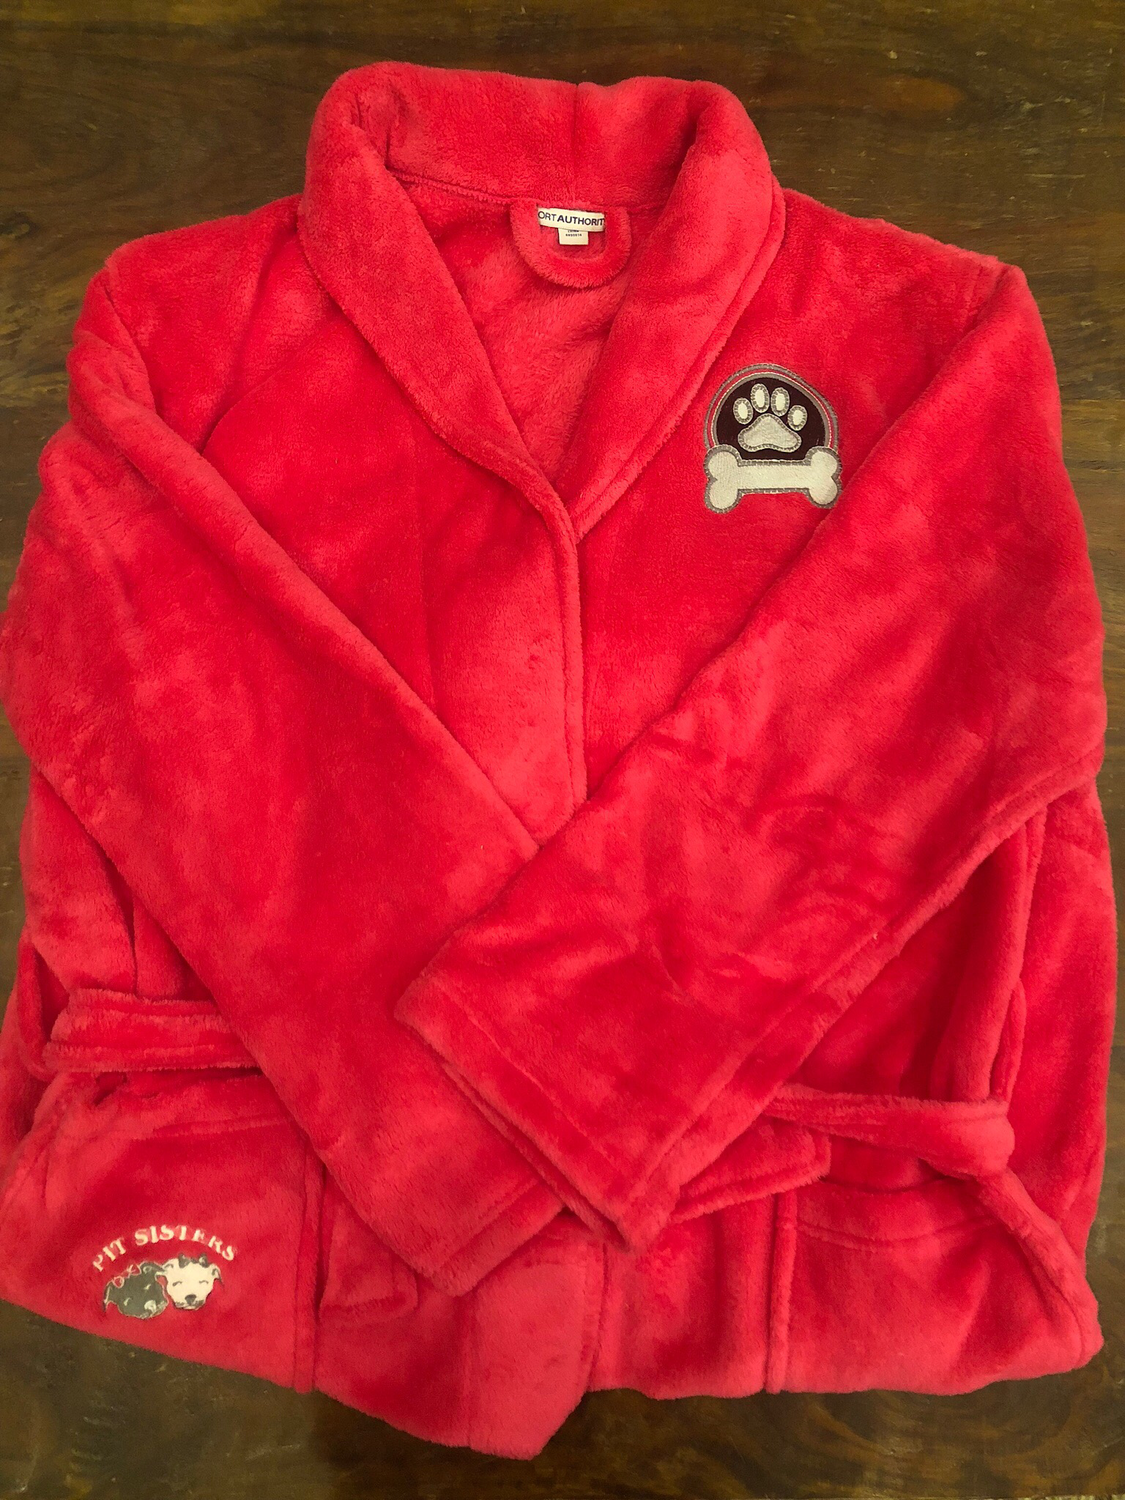 Bath robe: Pink with Silver paw- L/XL